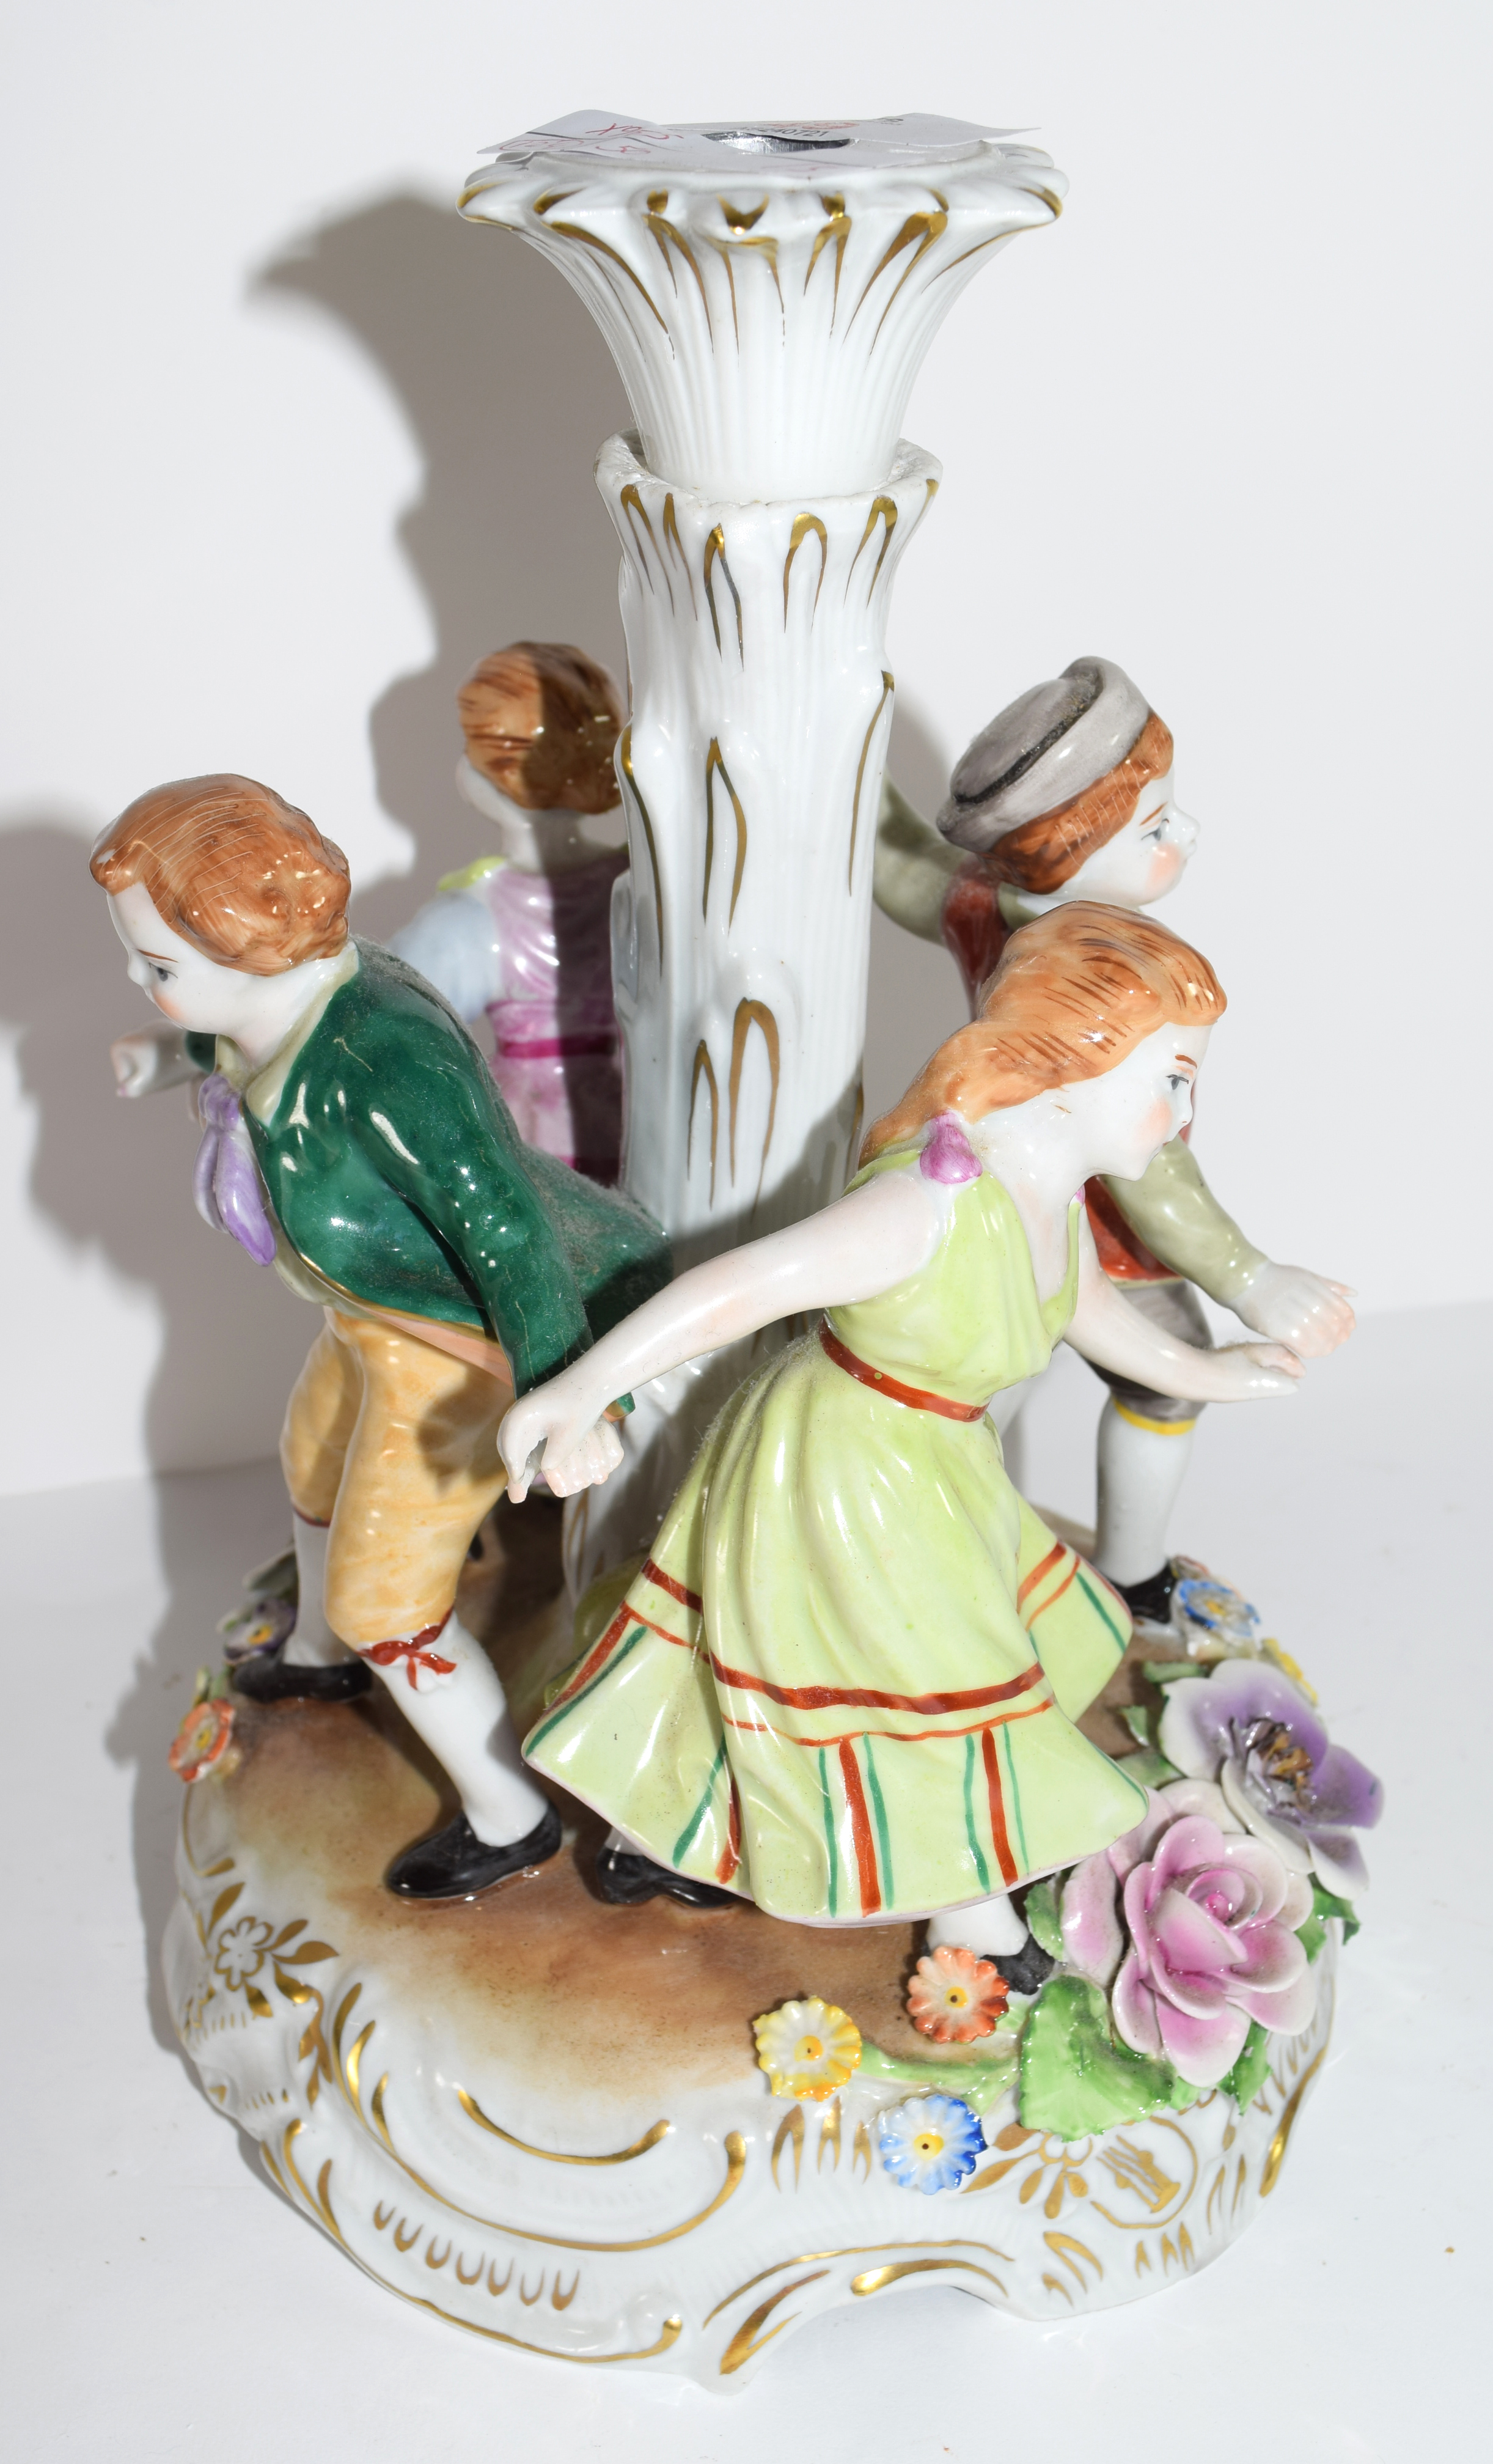 Continental porcelain candlestick in Meissen style decorated with children dancing around a - Image 2 of 2